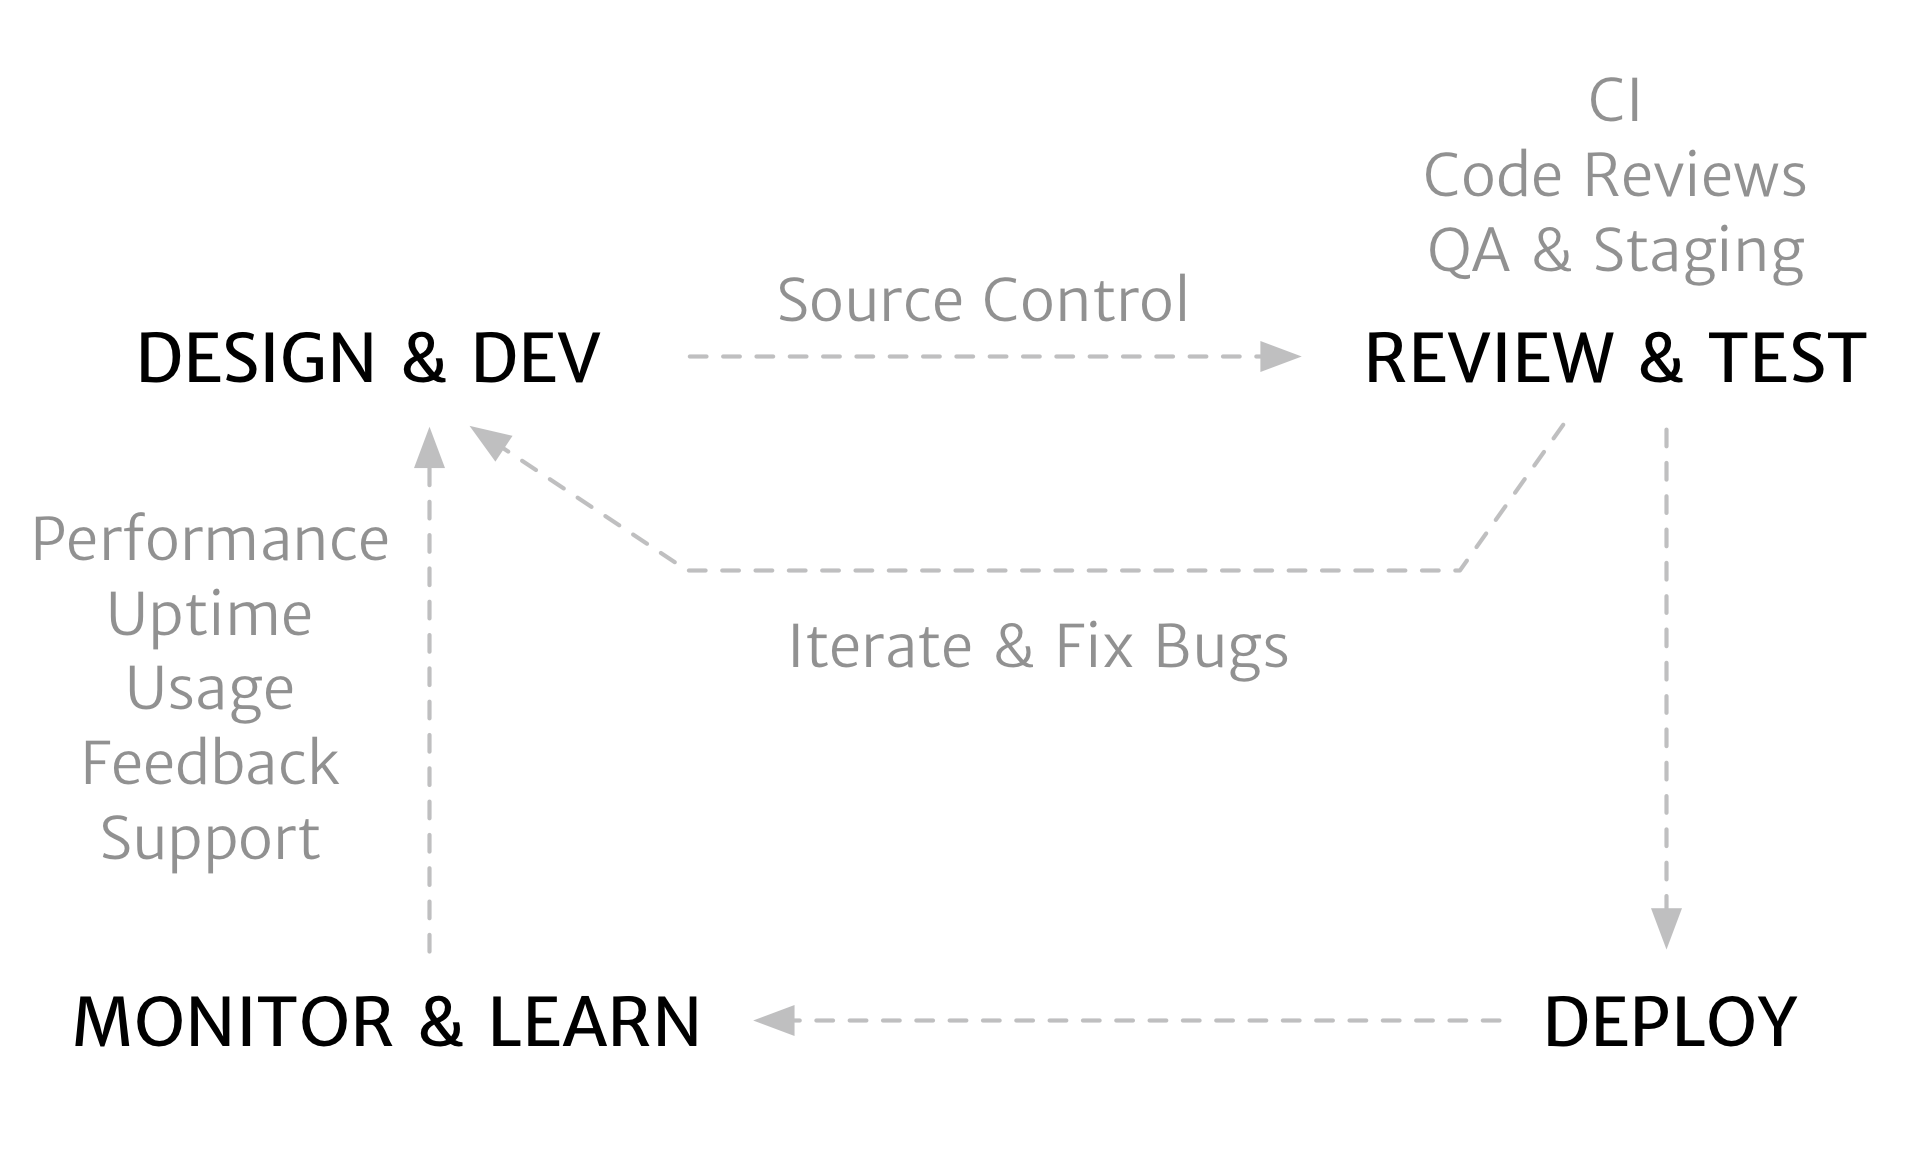 An overview of the software development life cycle.